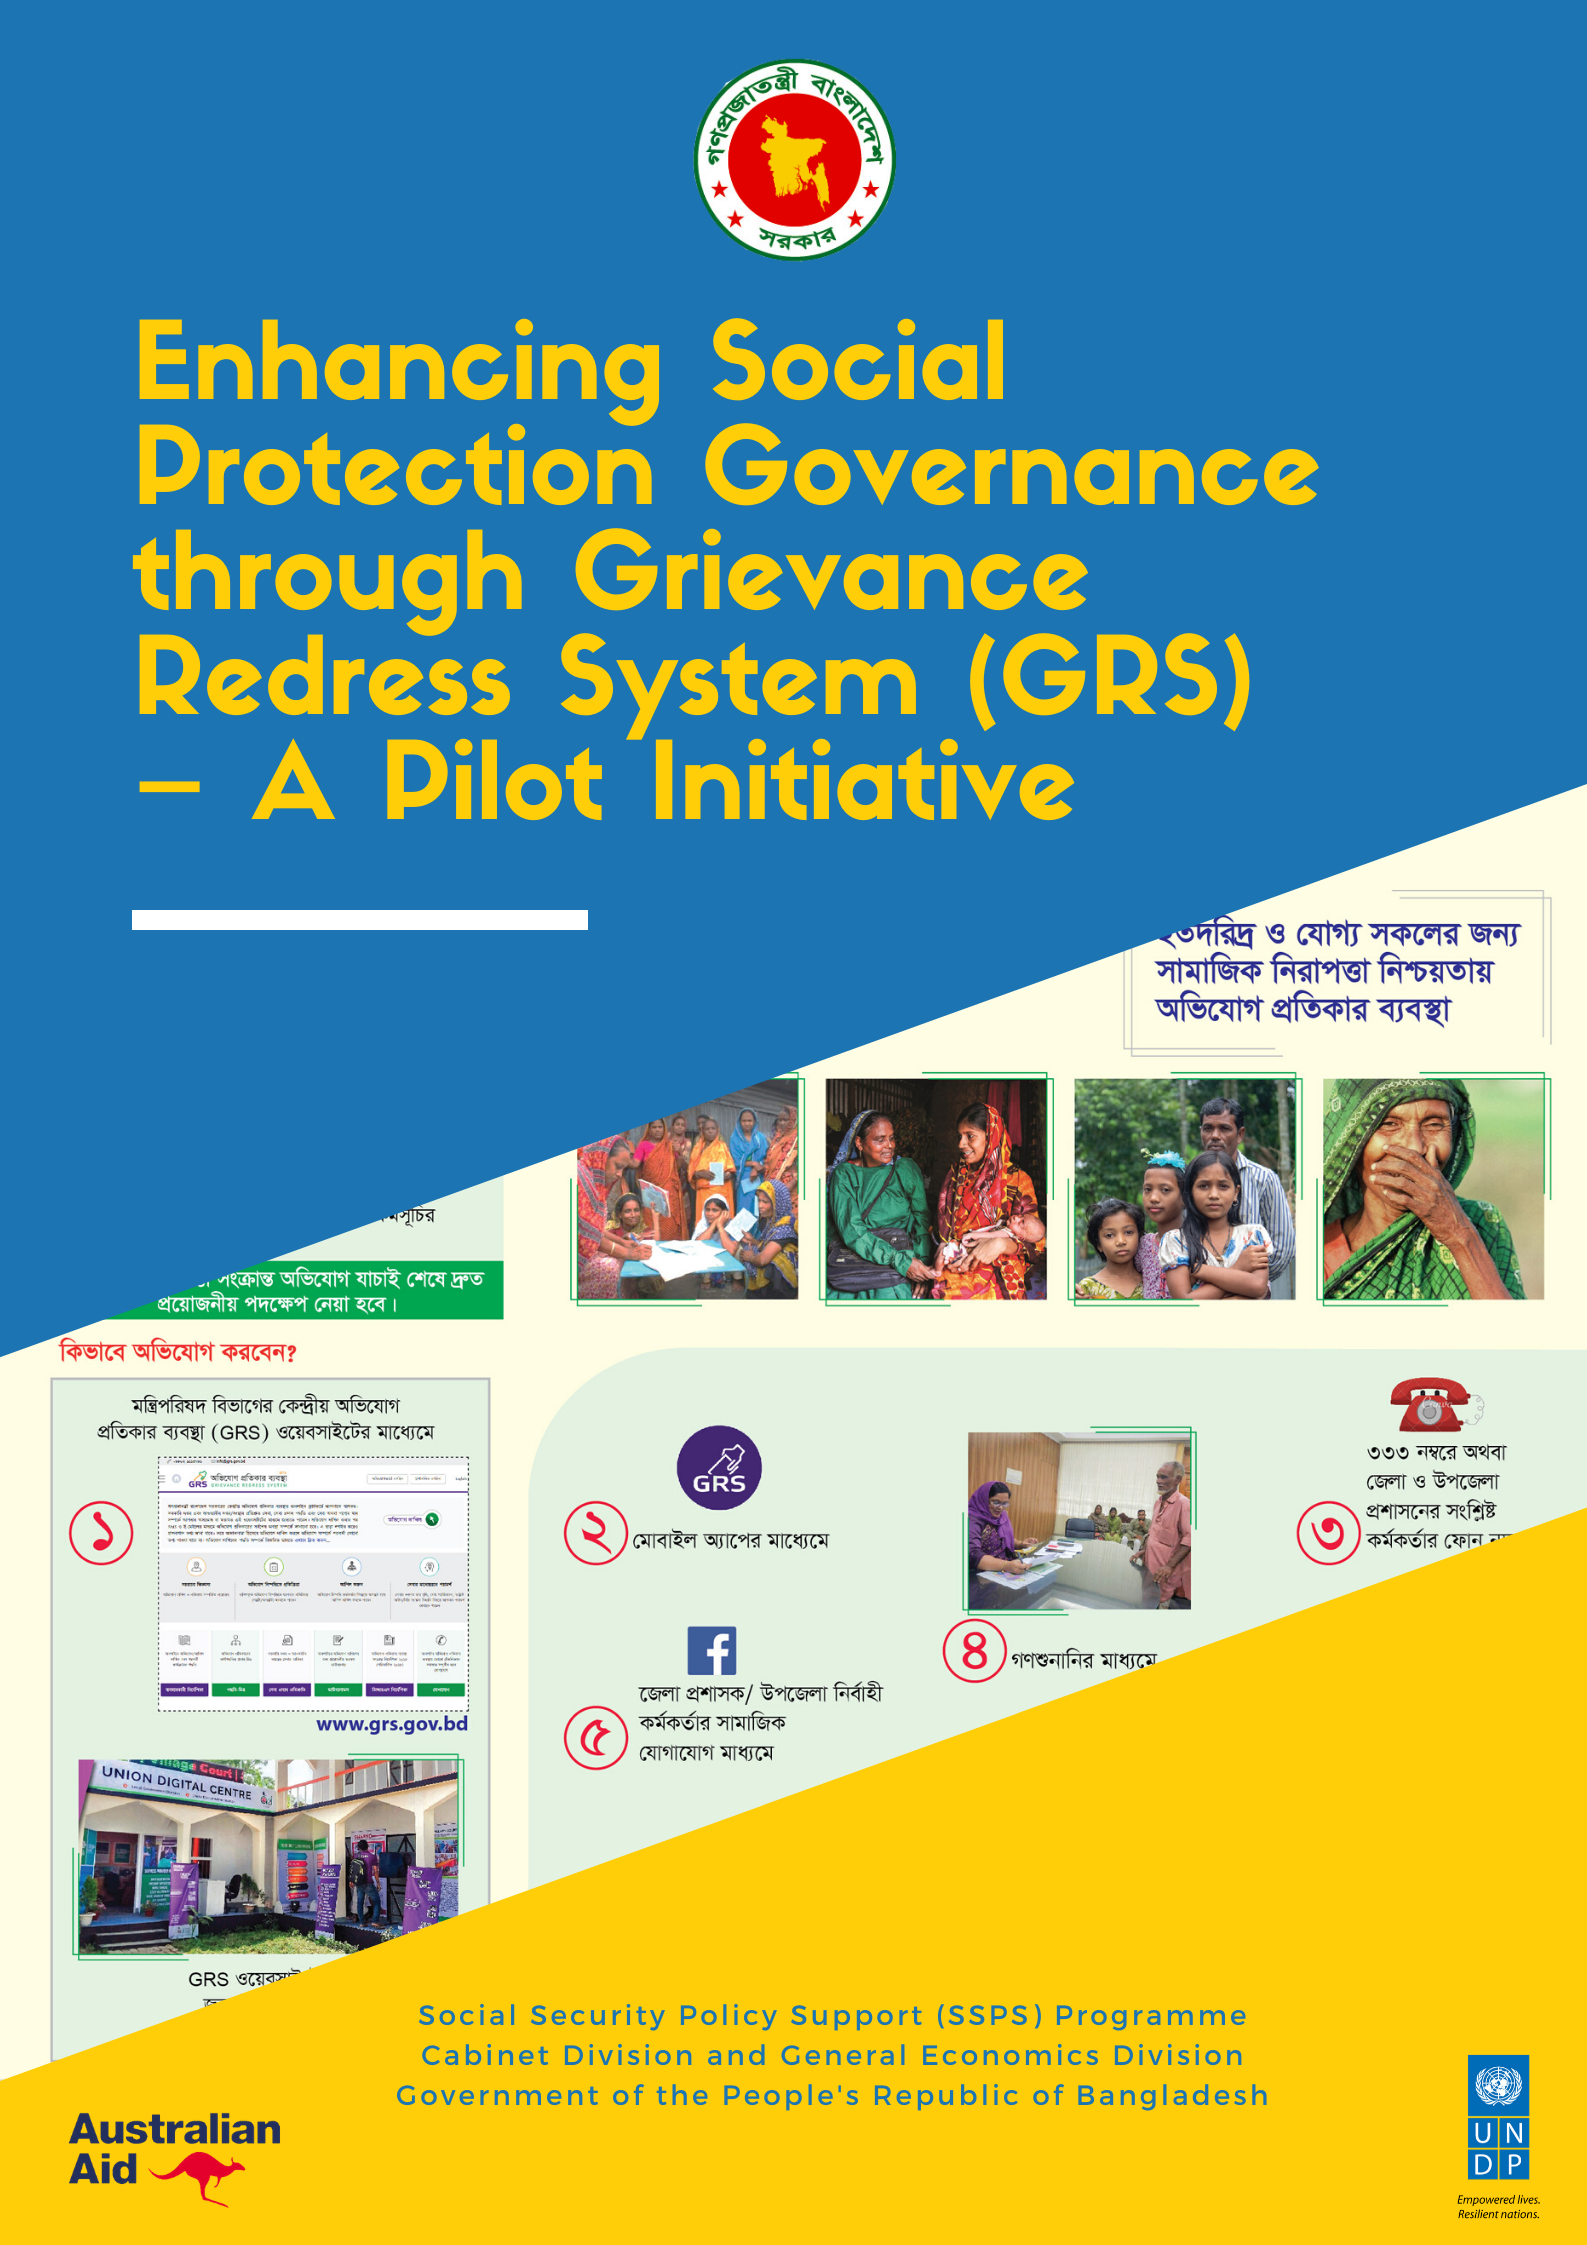 Enhancing Social Protection Governance through Grievance Redress System